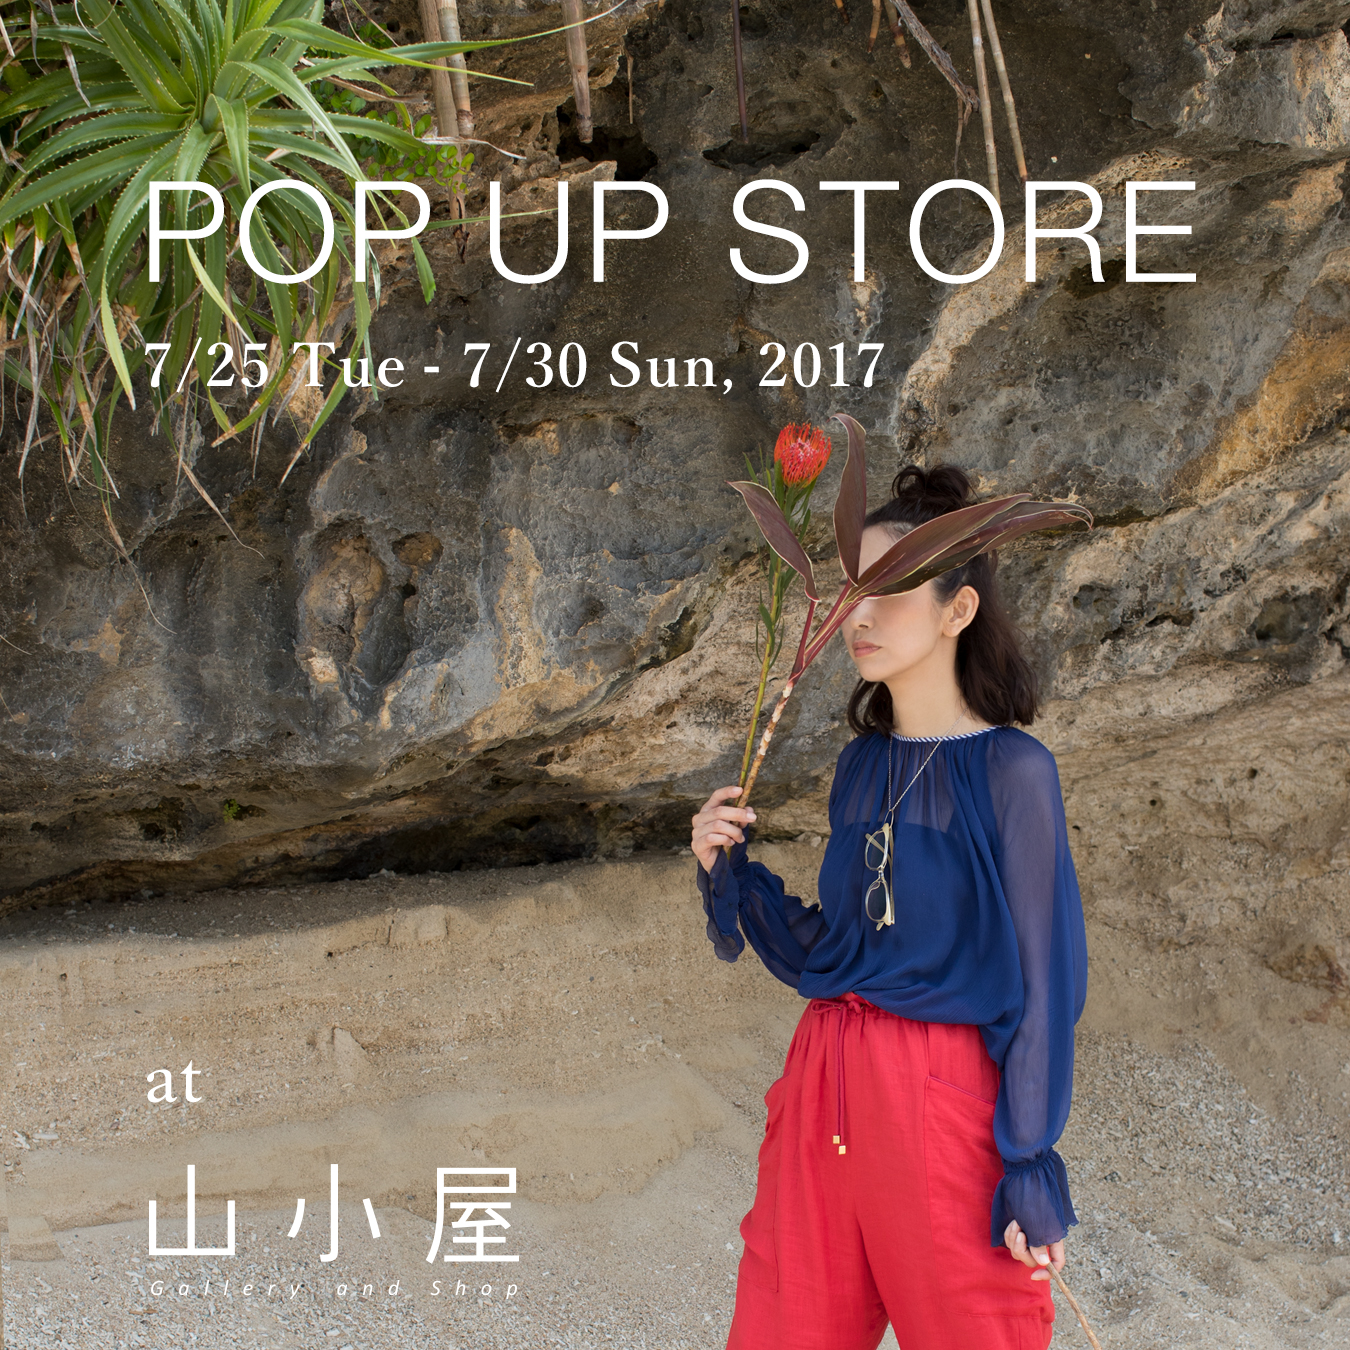 POPUP STORE @山小屋